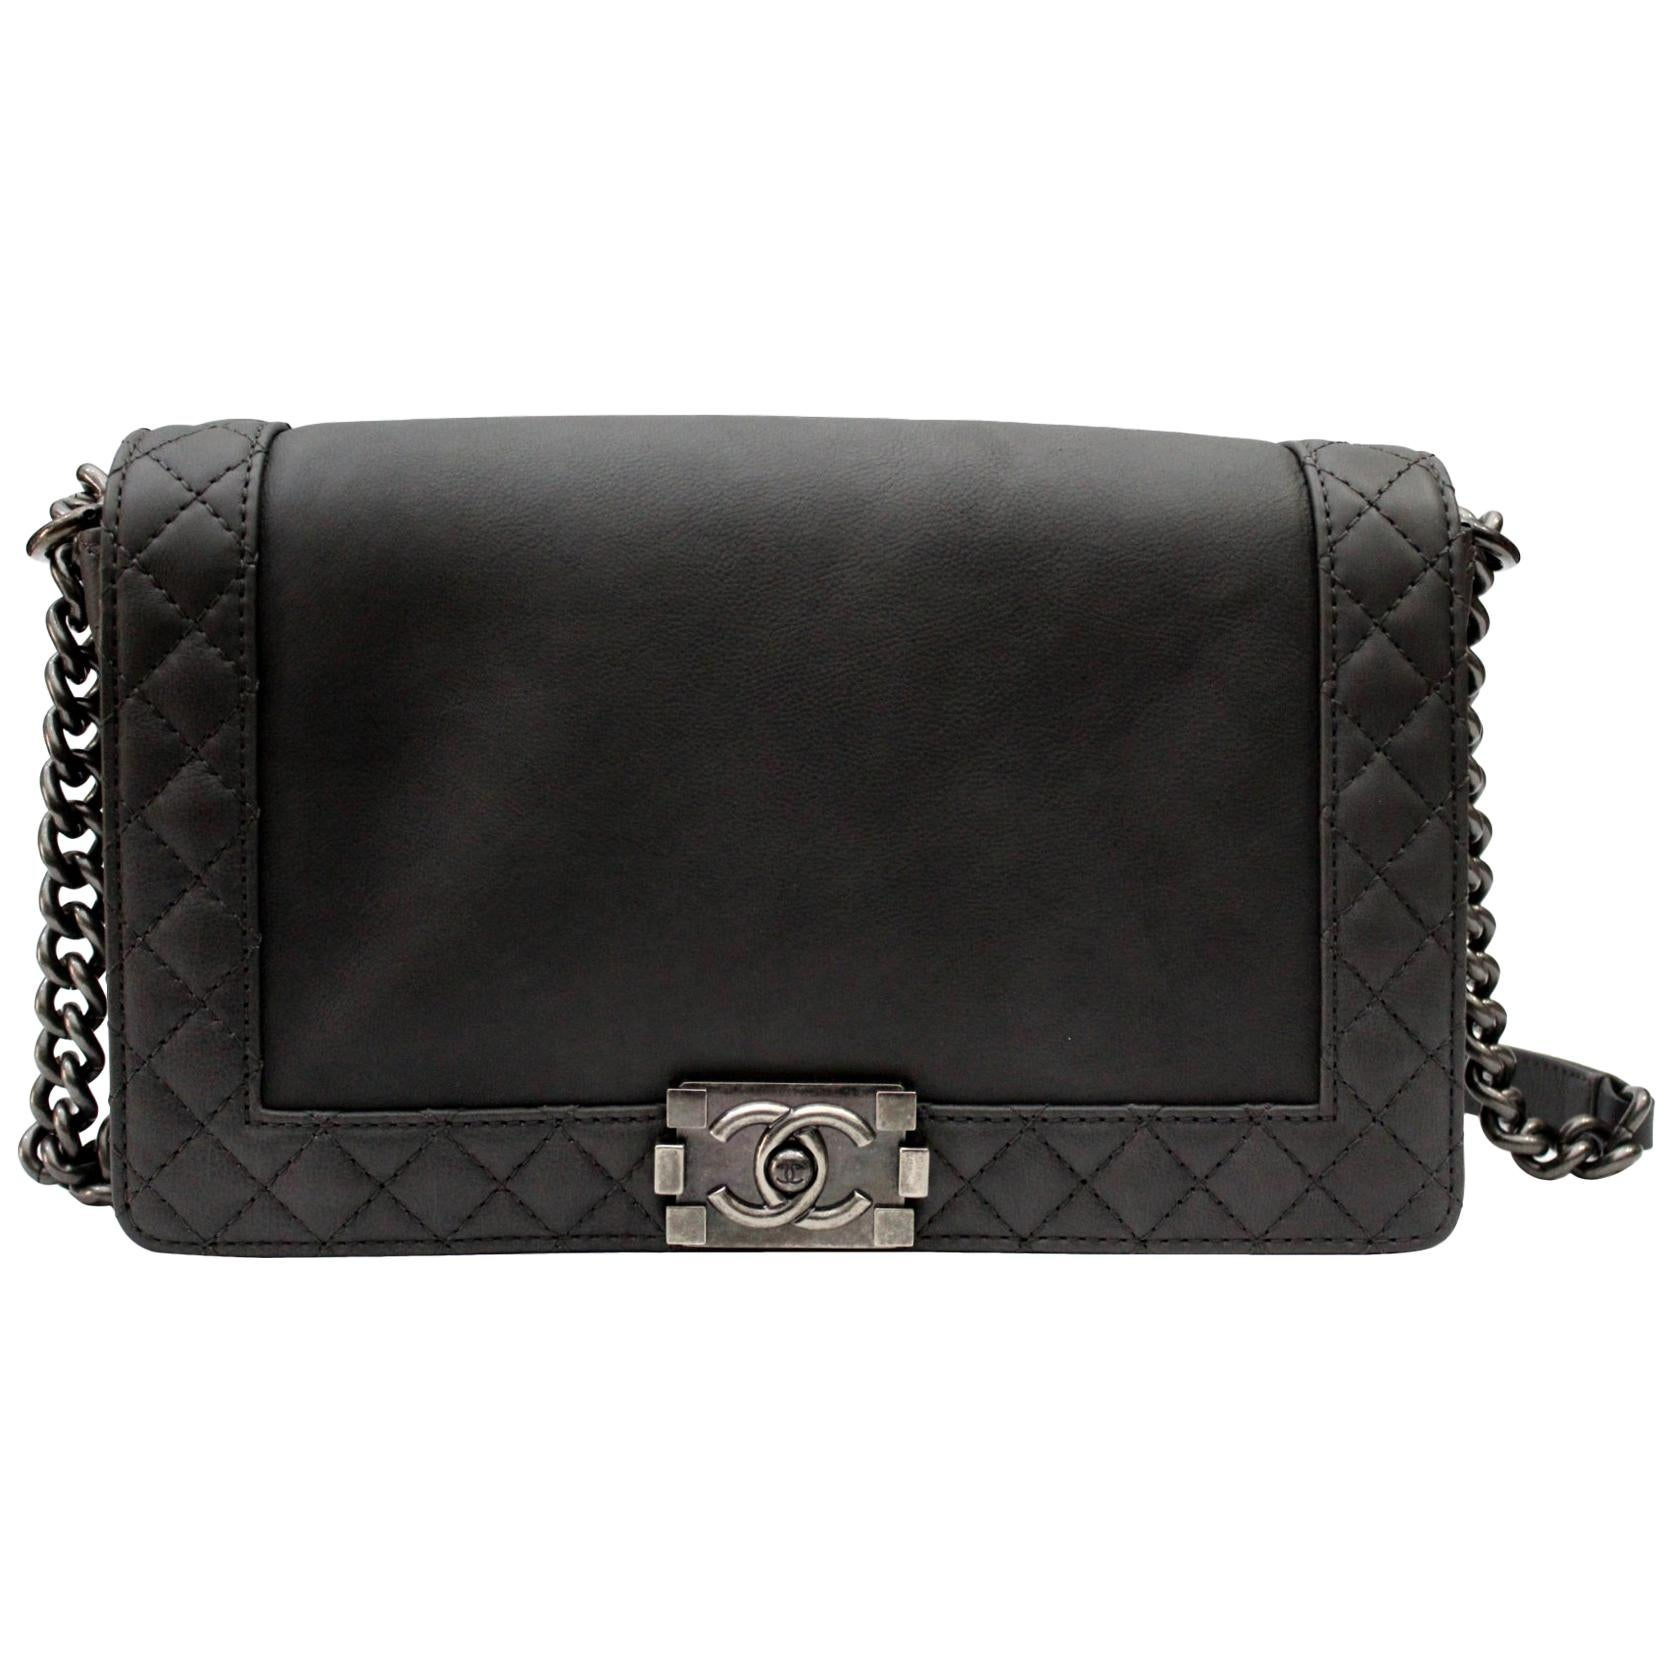 a62f626418df 2013/2014 Chanel Gry Leather Reverso Boy Bag at 1stdibs